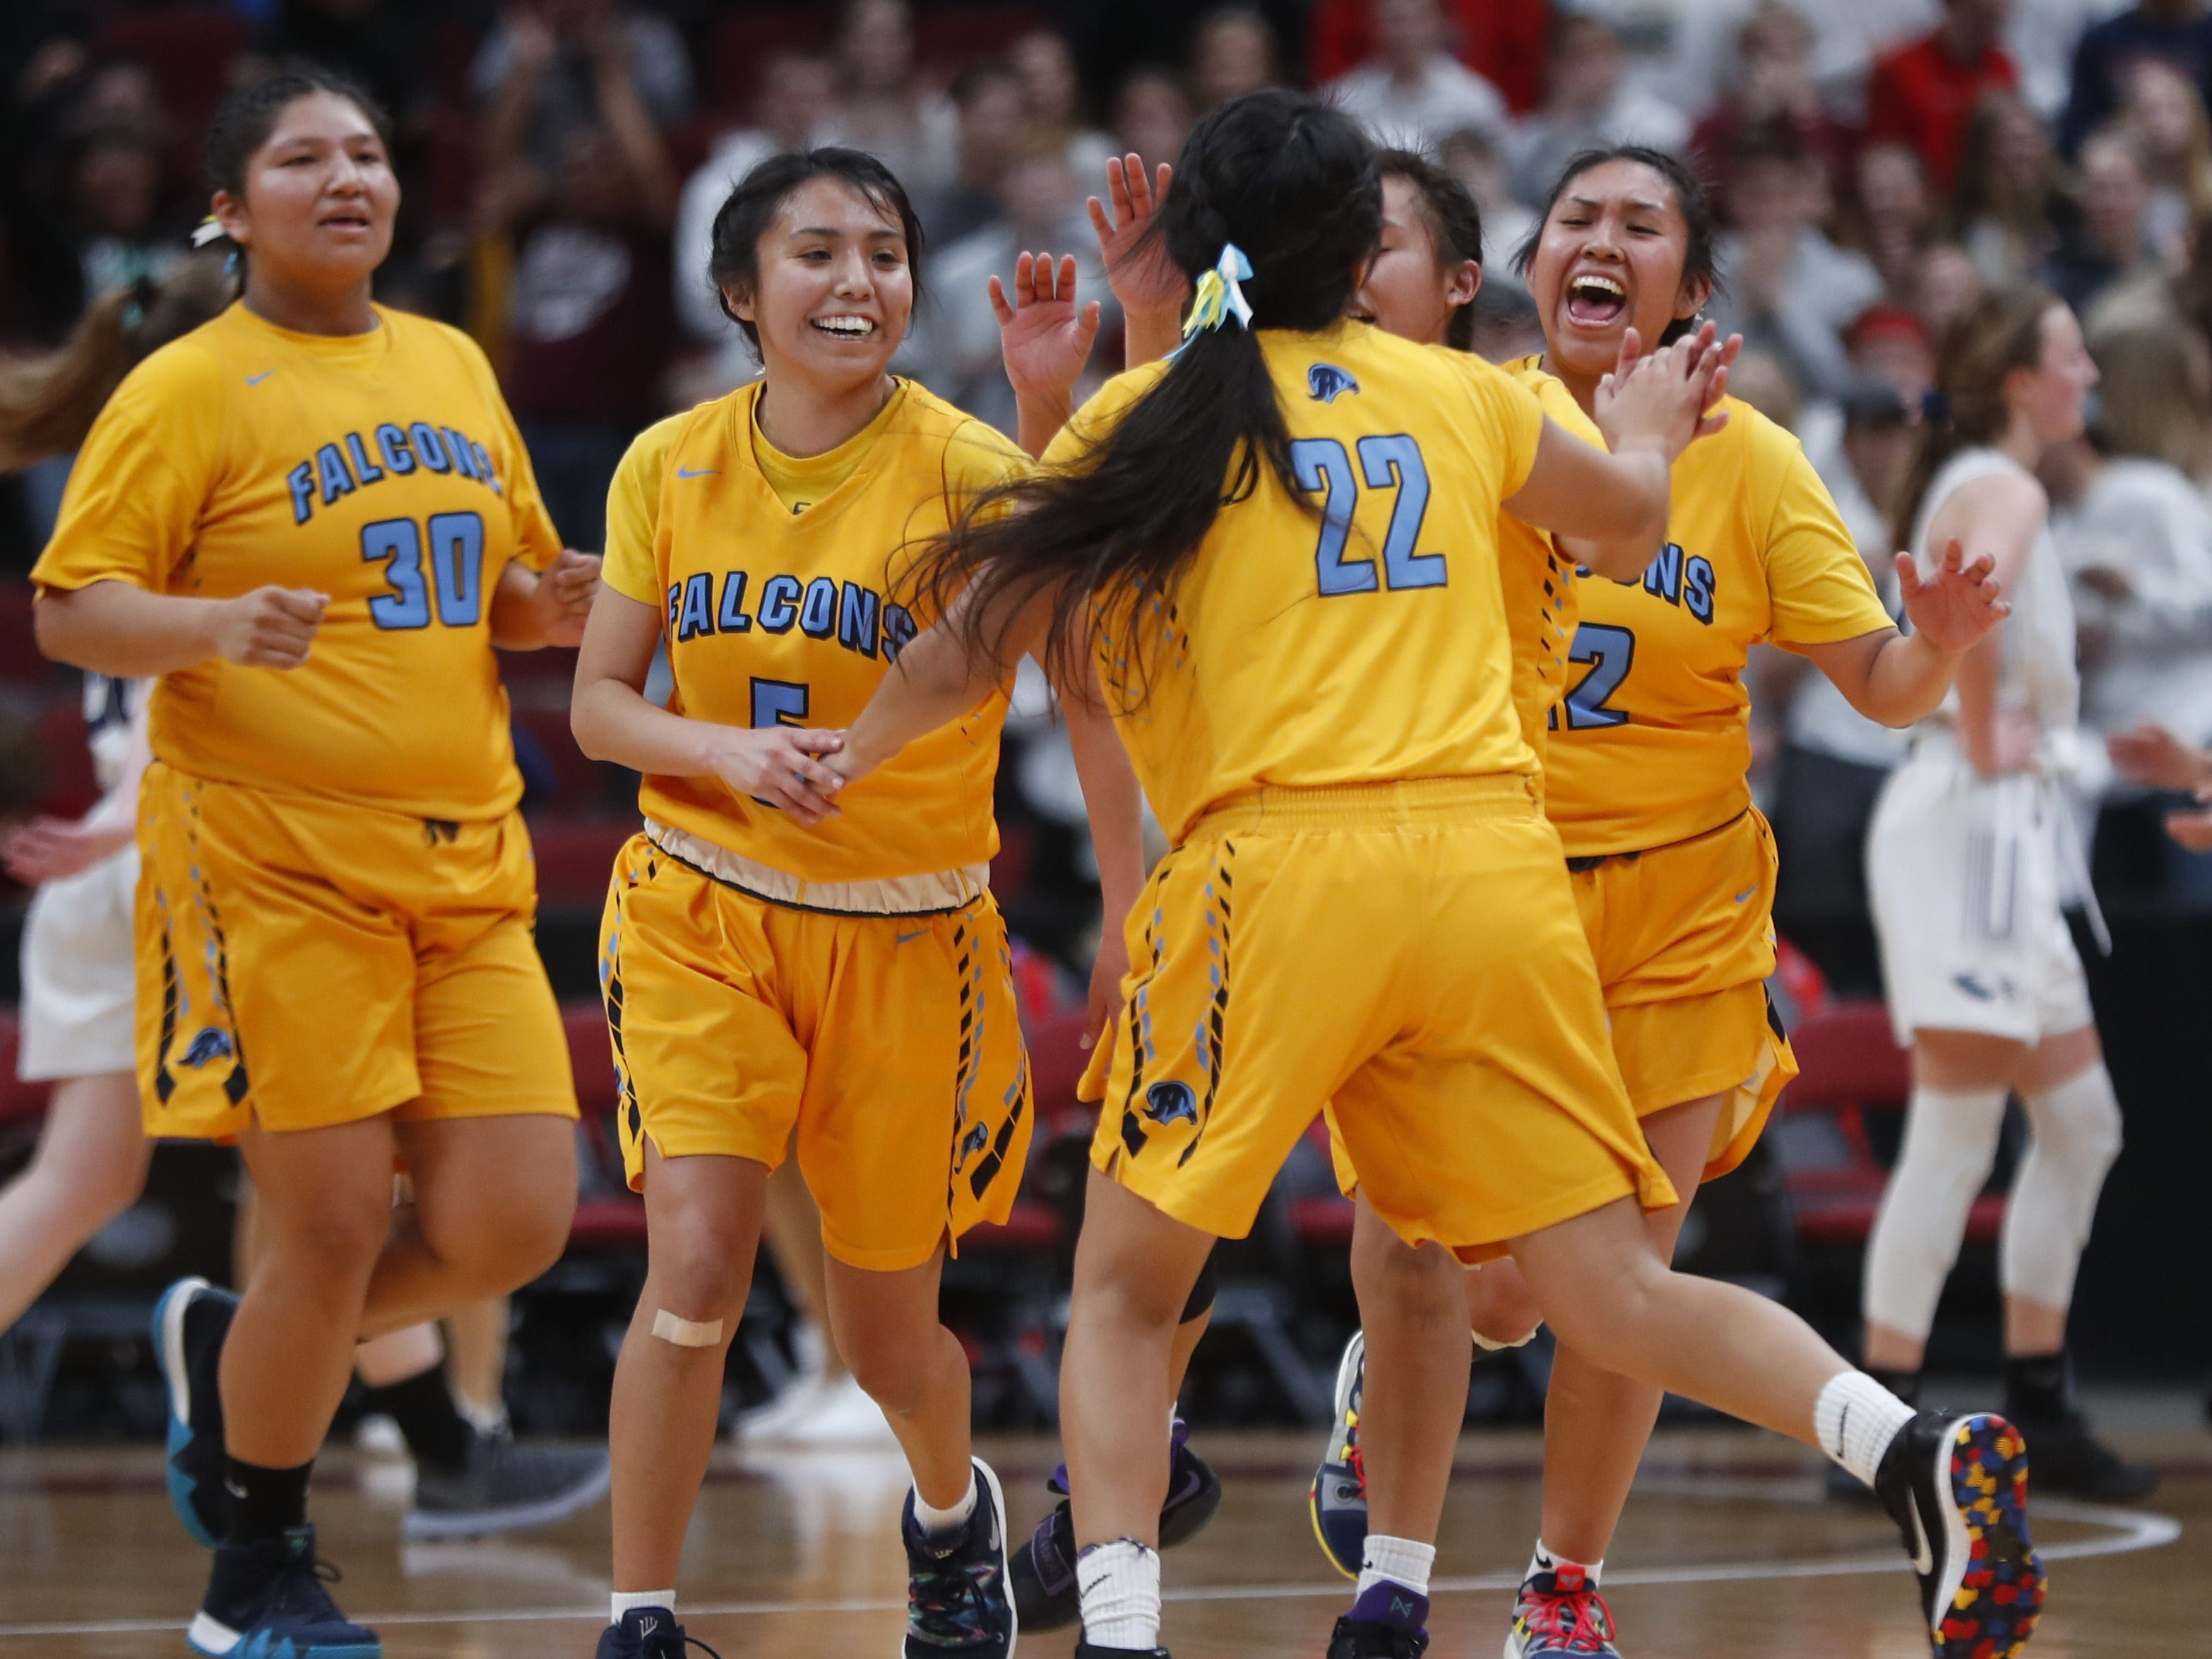 Alchesay's Laney Lupe celebrates with her teammates after hitting a three pointer during the second half against Scottsdale Christian during the 2A girls basketball state championship game at Gila River Arena in Glendale, Ariz. on February 23, 2019.